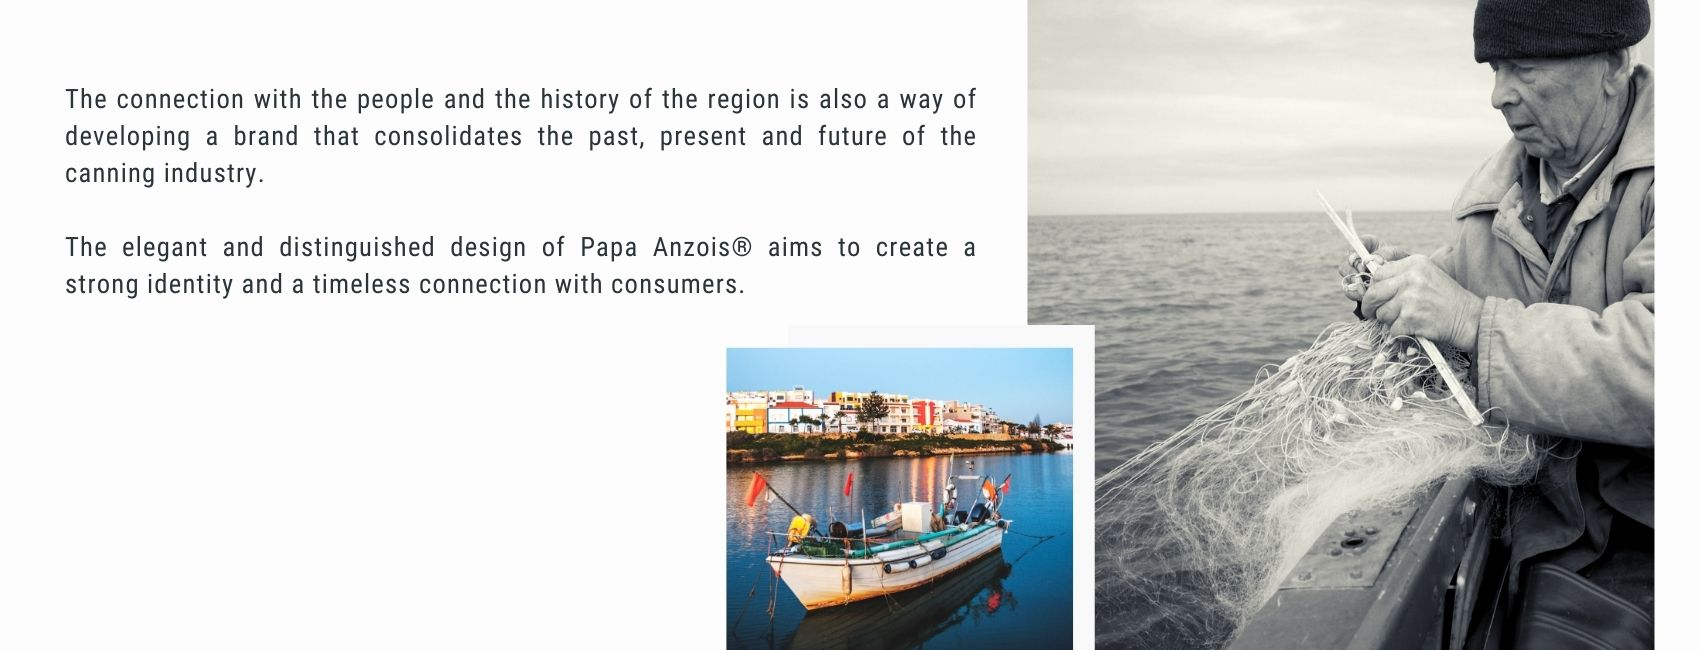 Papa Anzois® canned foods come from the dream of returning to the historical roots of canning production in the western Algarve. By reinventing the destiny of this industry and the production processes, a superior quality preserve that respects the integrity of the ingredients is developed.